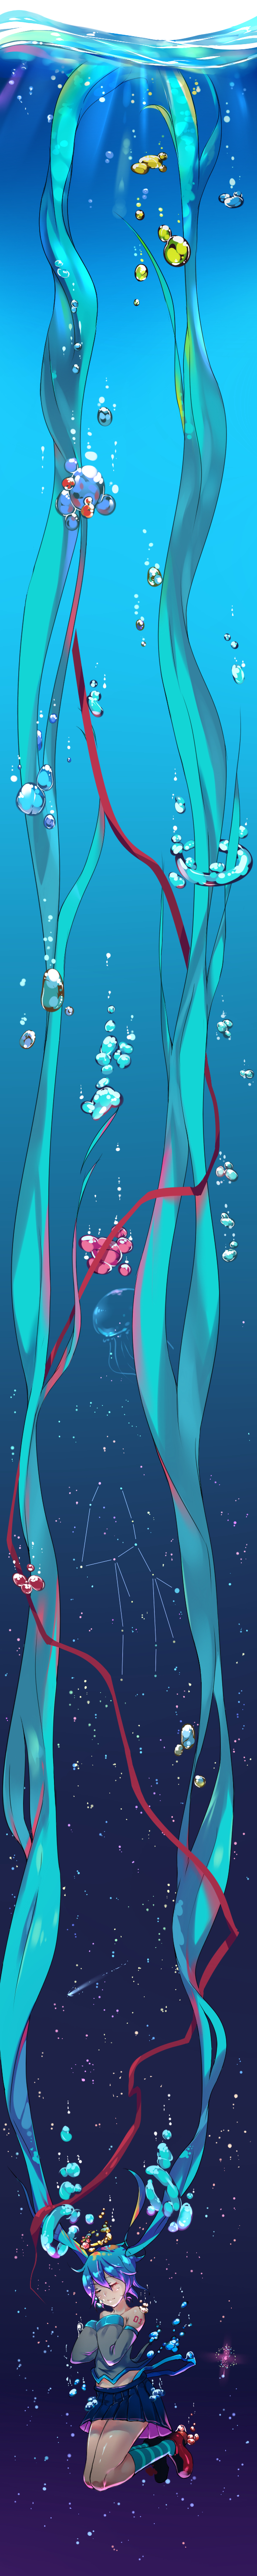 1girl absurdly_long_hair absurdres air_bubble aqua_hair bare_shoulders bubble closed_eyes comet constellation hatsune_miku highres jellyfish long_hair long_image pleated_skirt qing_lan ribbon shinkai_shoujo_(vocaloid) skirt solo tall_image twintails underwater very_long_hair vocaloid water